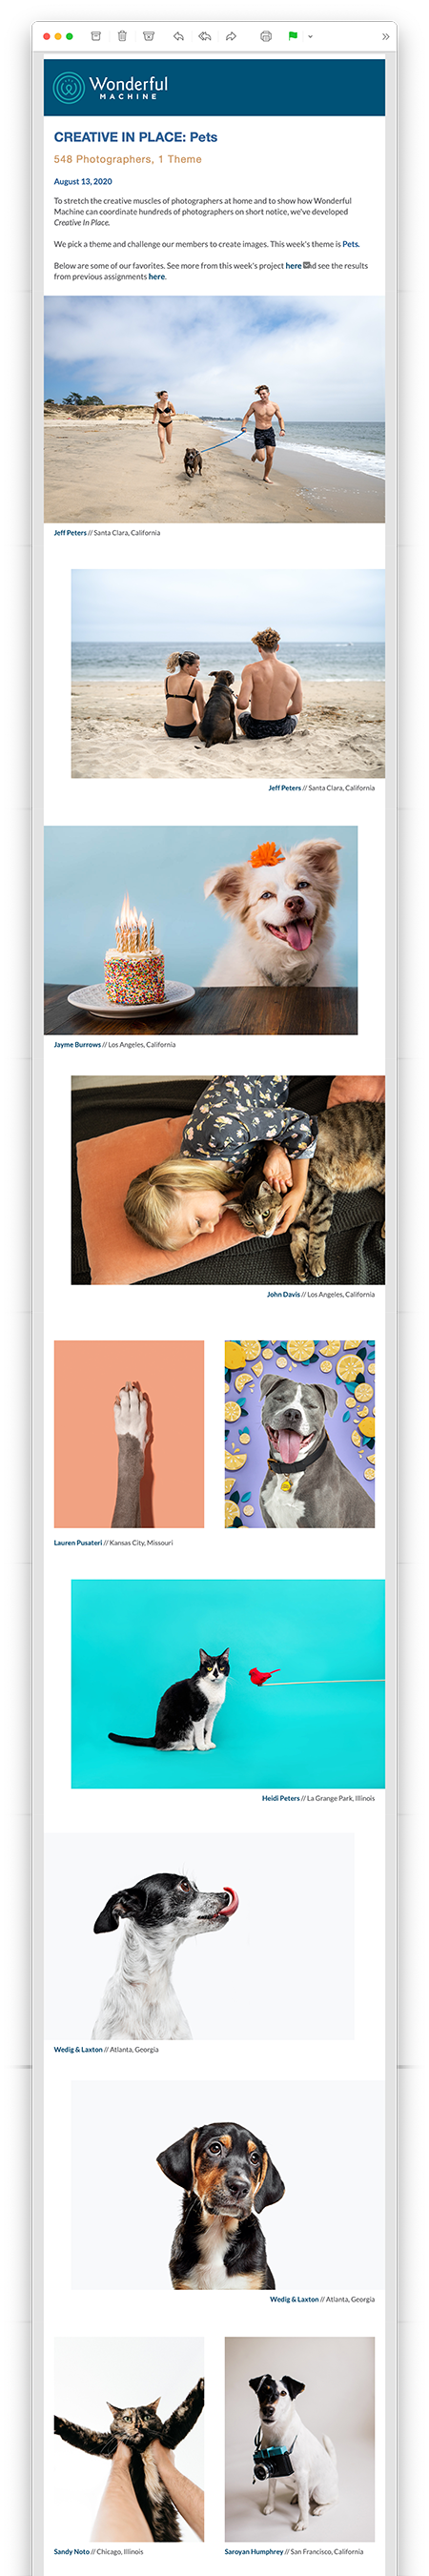 Creative In Place Pets